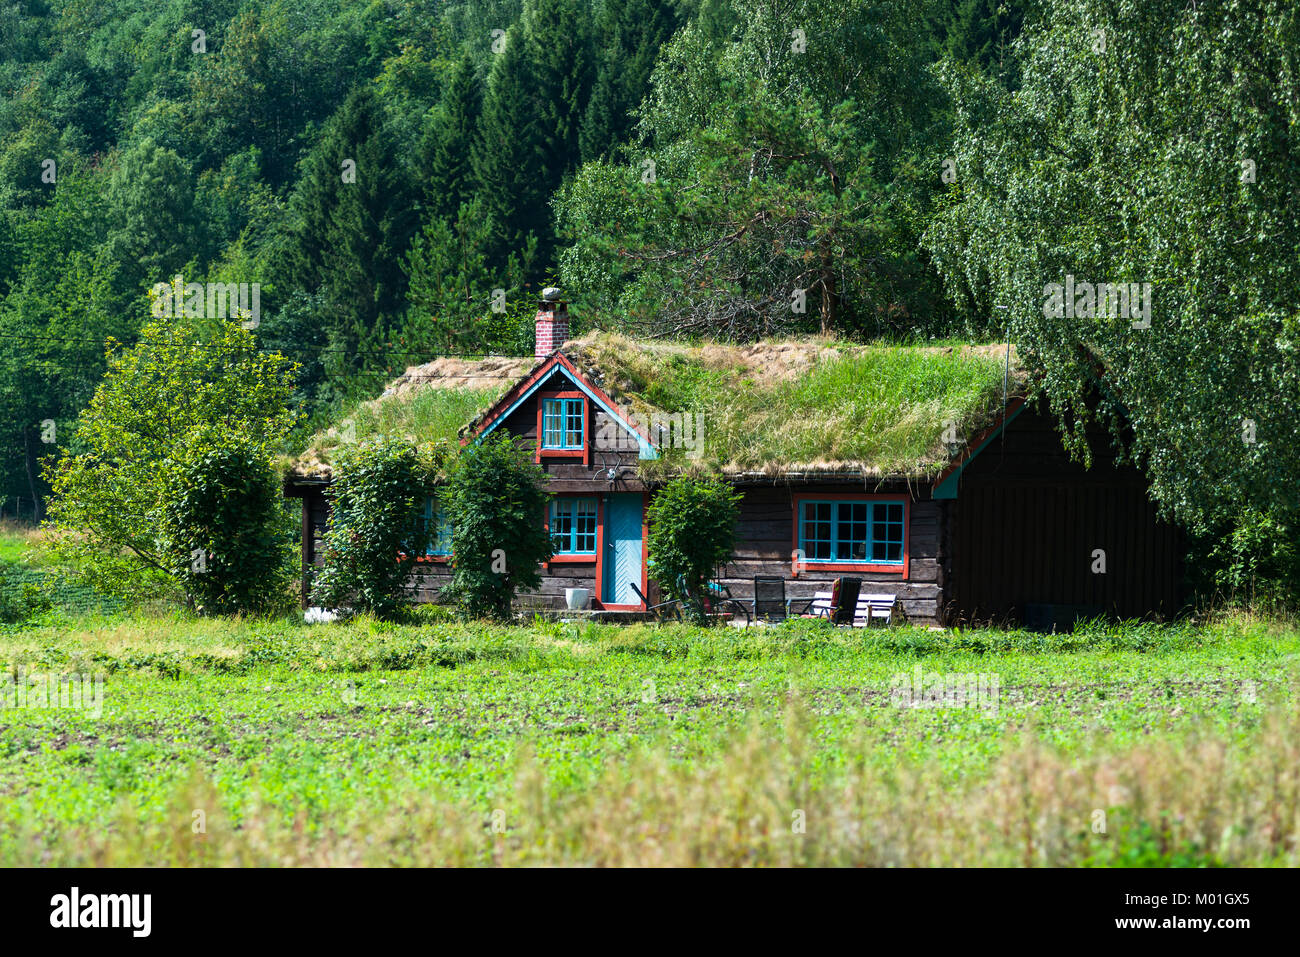 A sod roof log cabin with grass covering the roof. Seen near Åndalsne, Møre og Romsdal county, Norway. - Stock Image